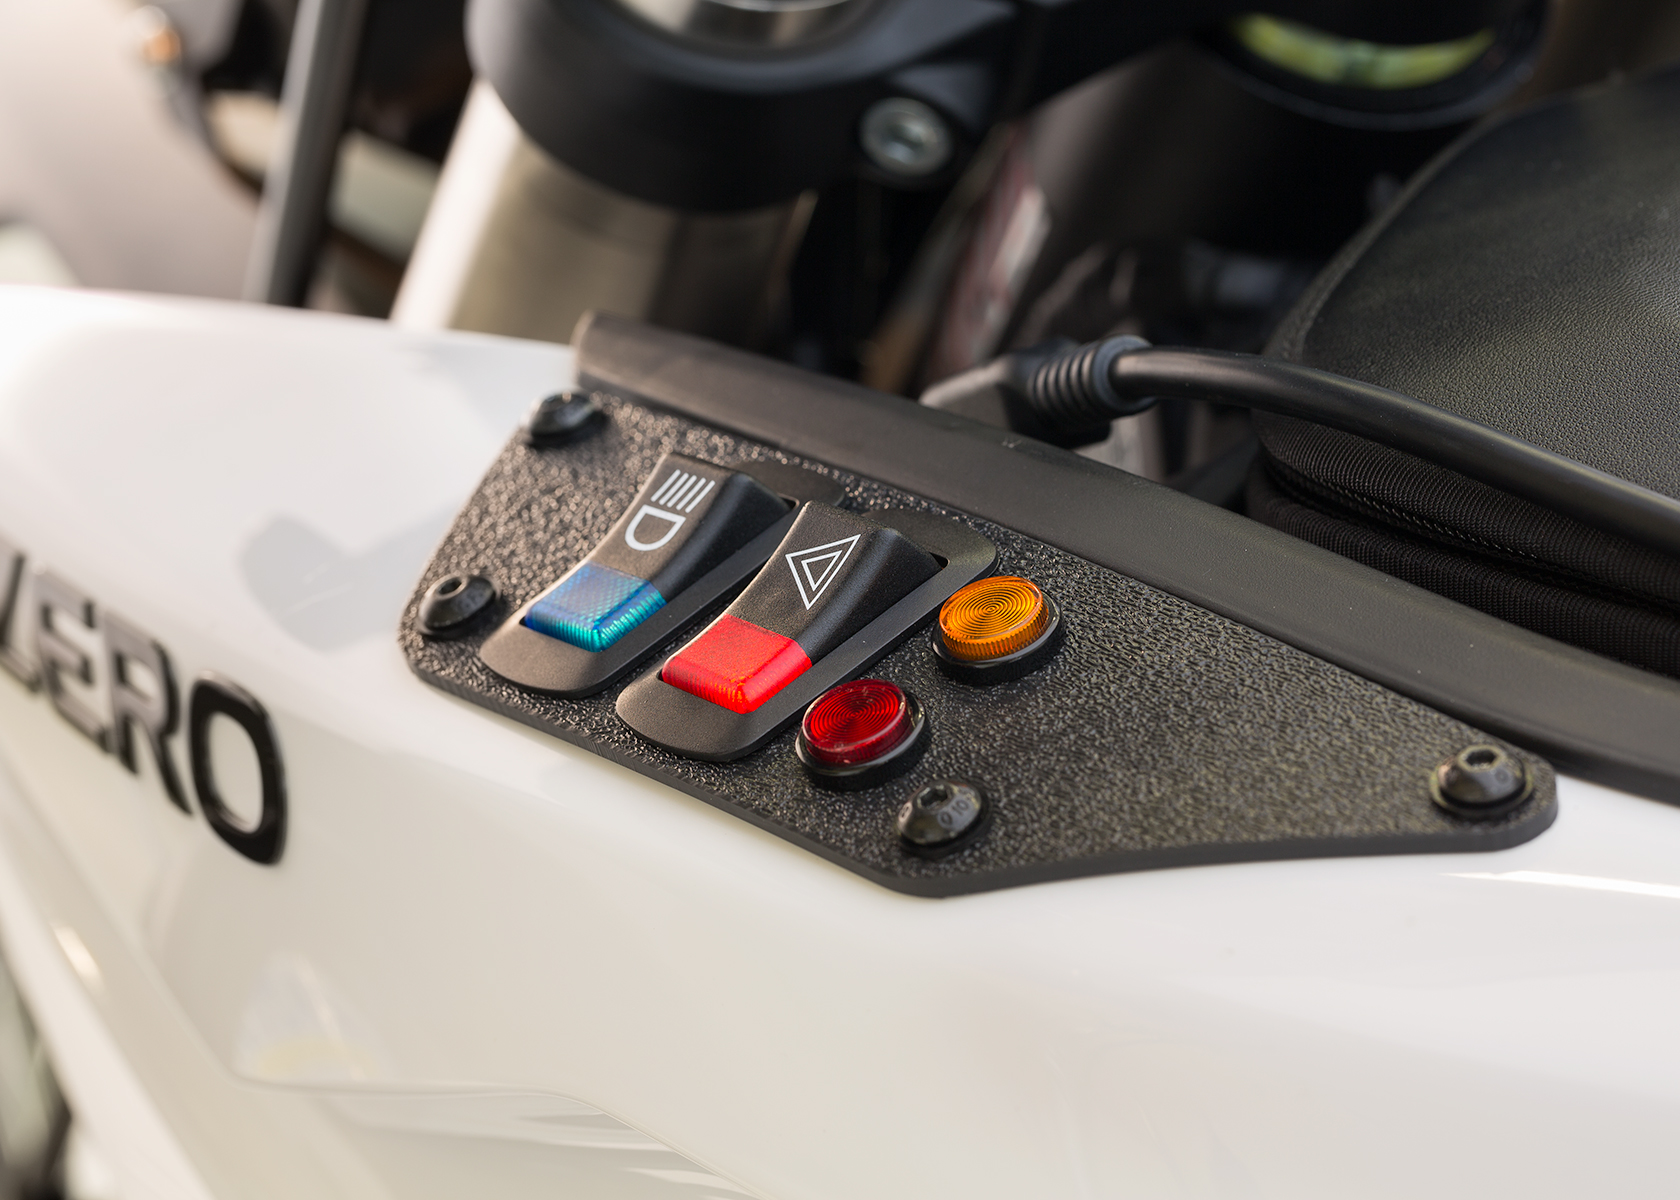 2014 Zero Police Electric Motorcycle: Hazard Switch